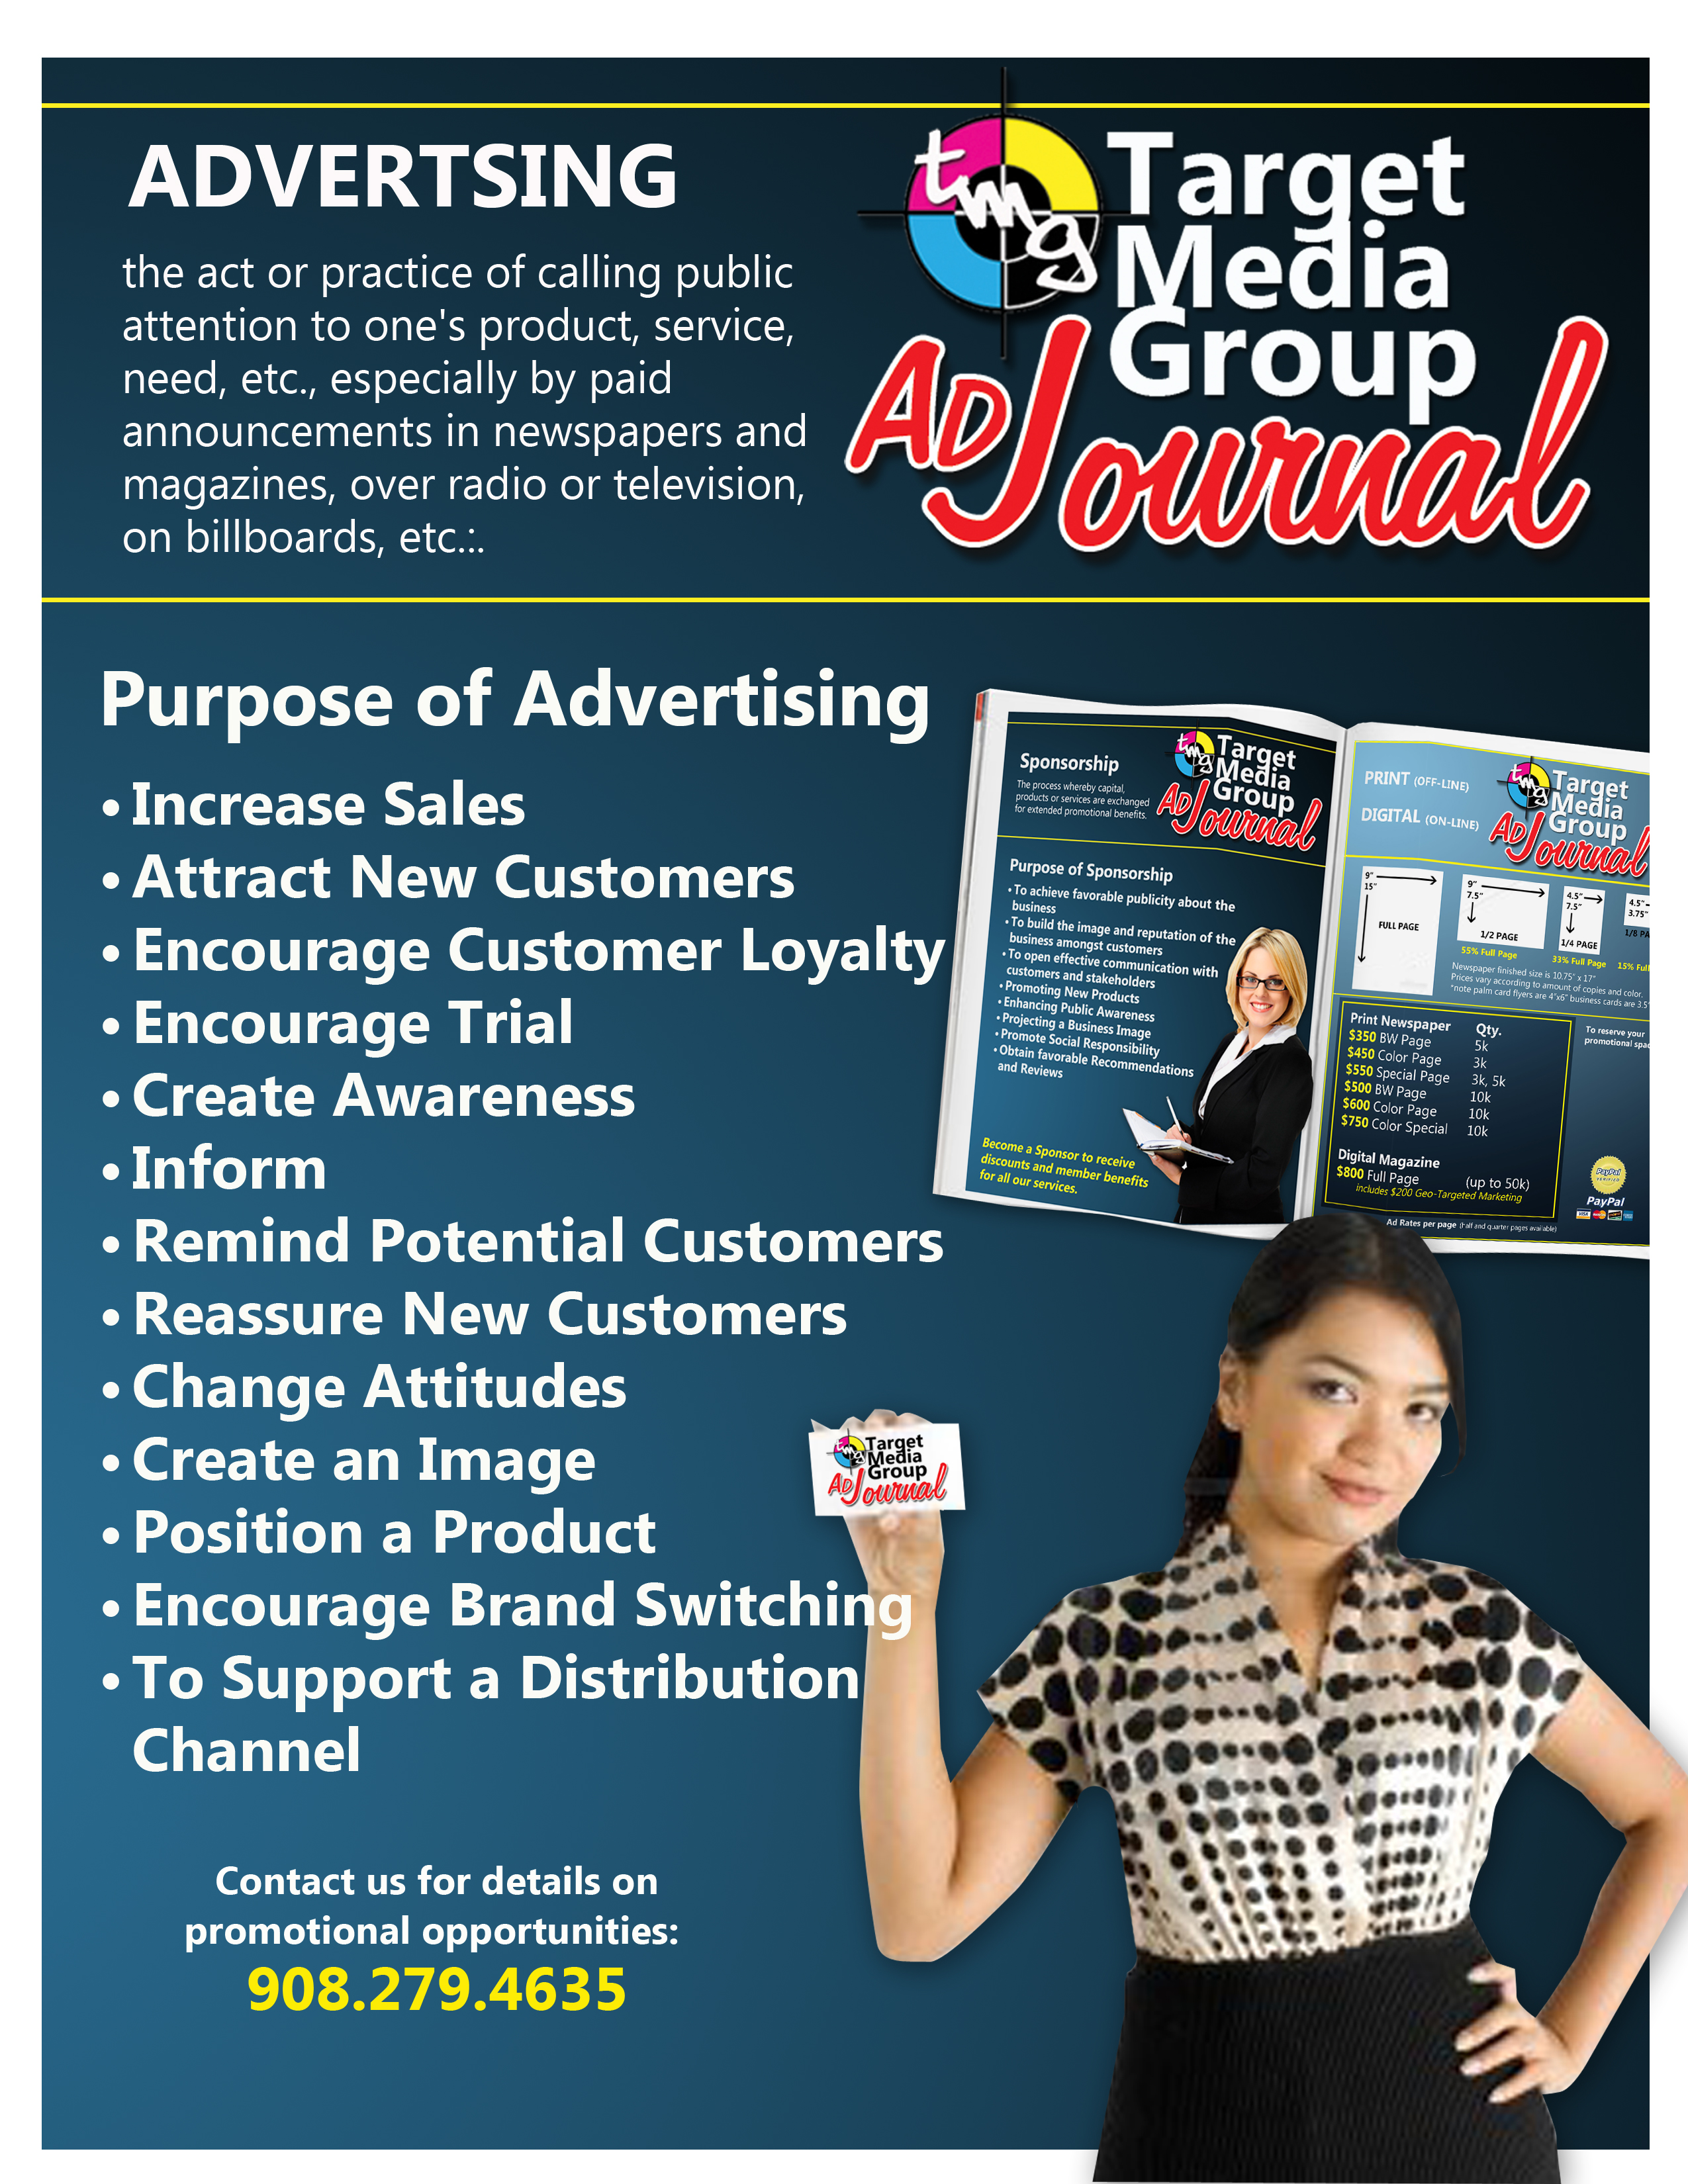 AD_JOURNAL_ADvertsing